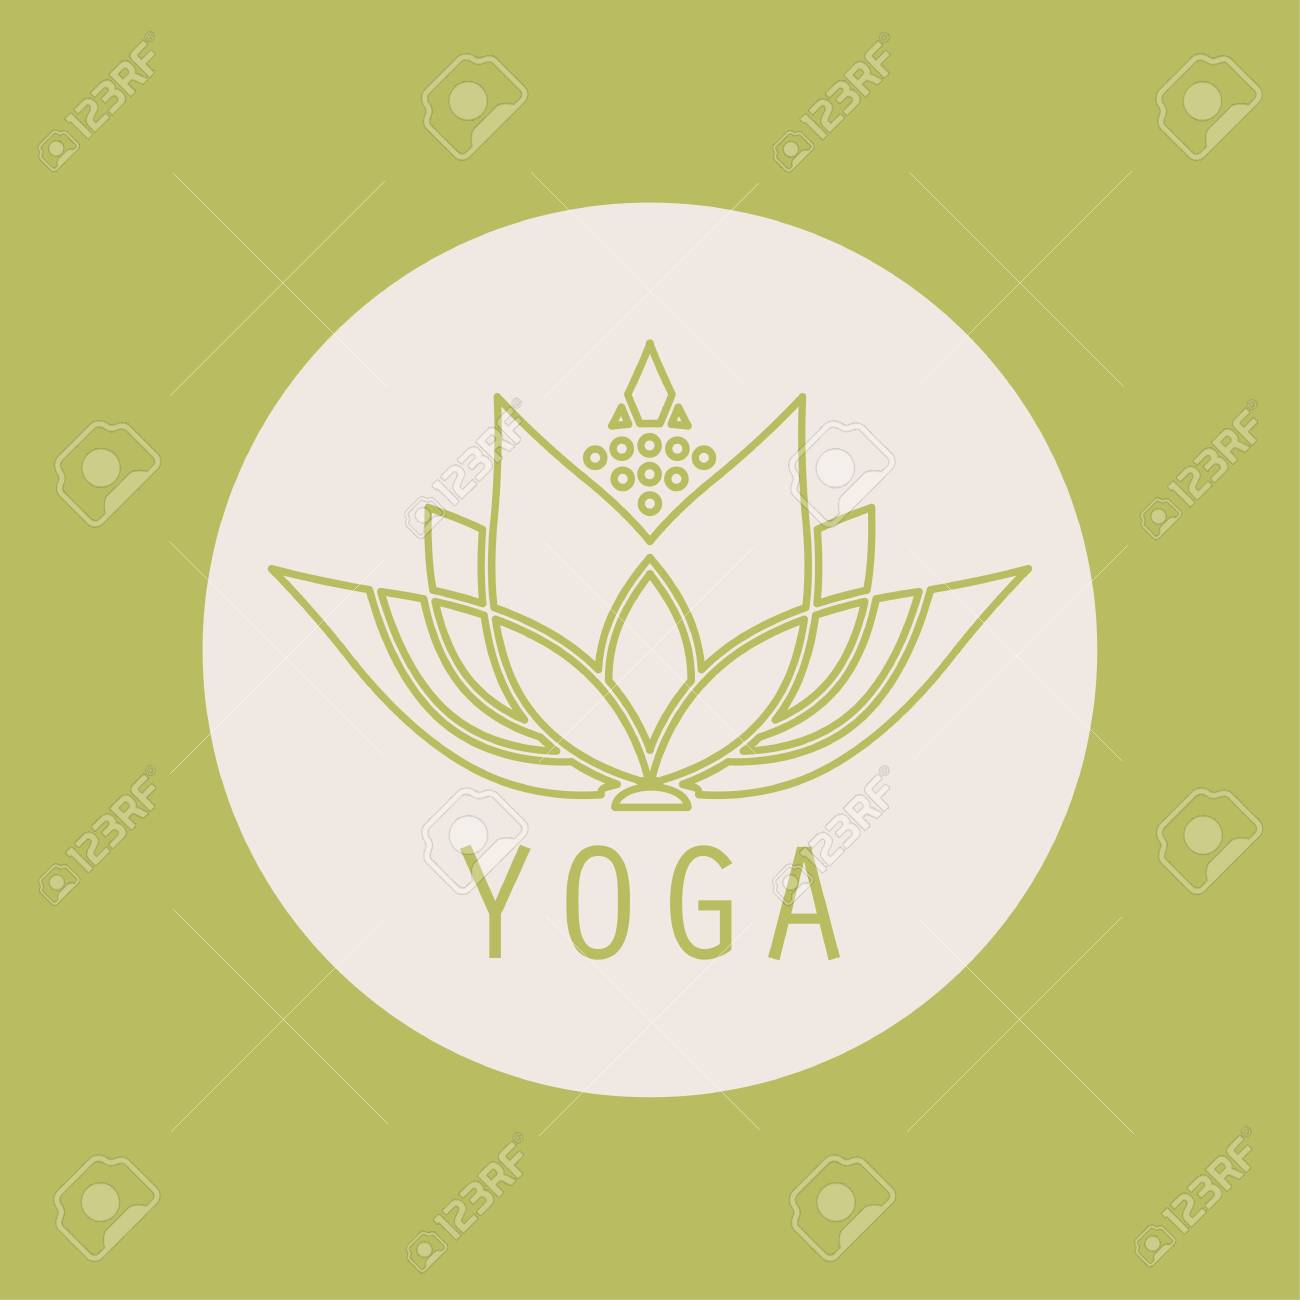 Emblem Yoga Icon Round Lotus Flower Design Royalty Free Cliparts